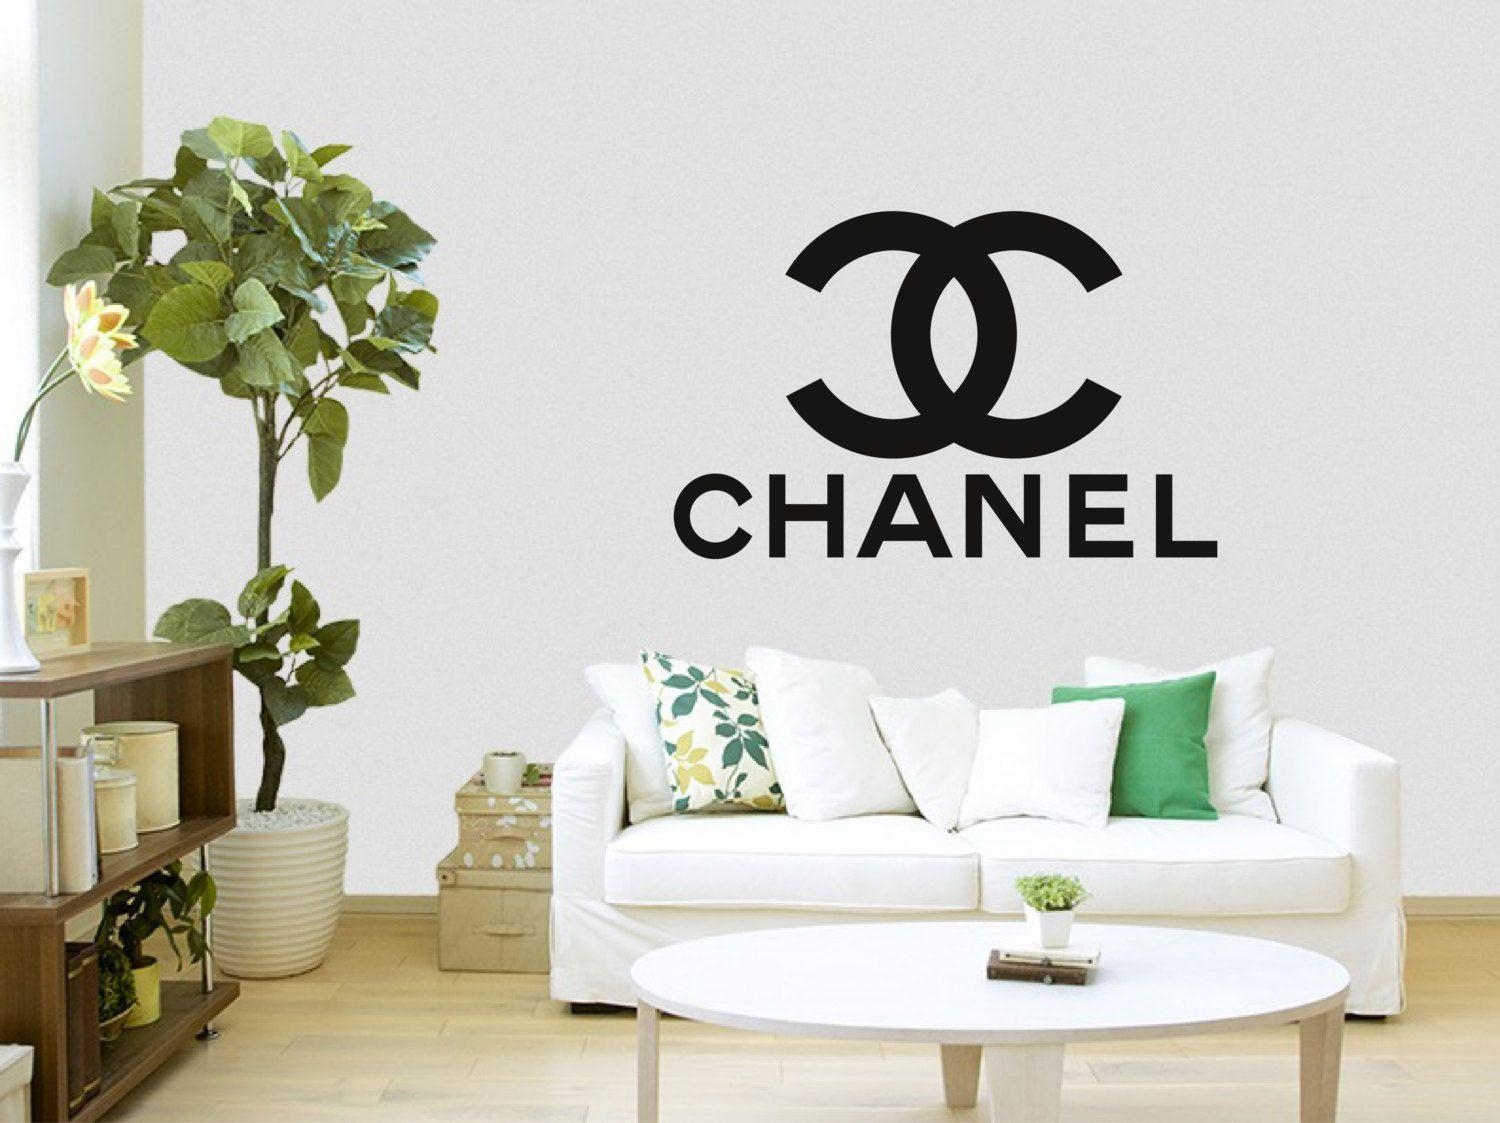 Coco Chanel Logo With Words Wall Sticker Inside Coco Chanel Wall Stickers (Image 8 of 20)